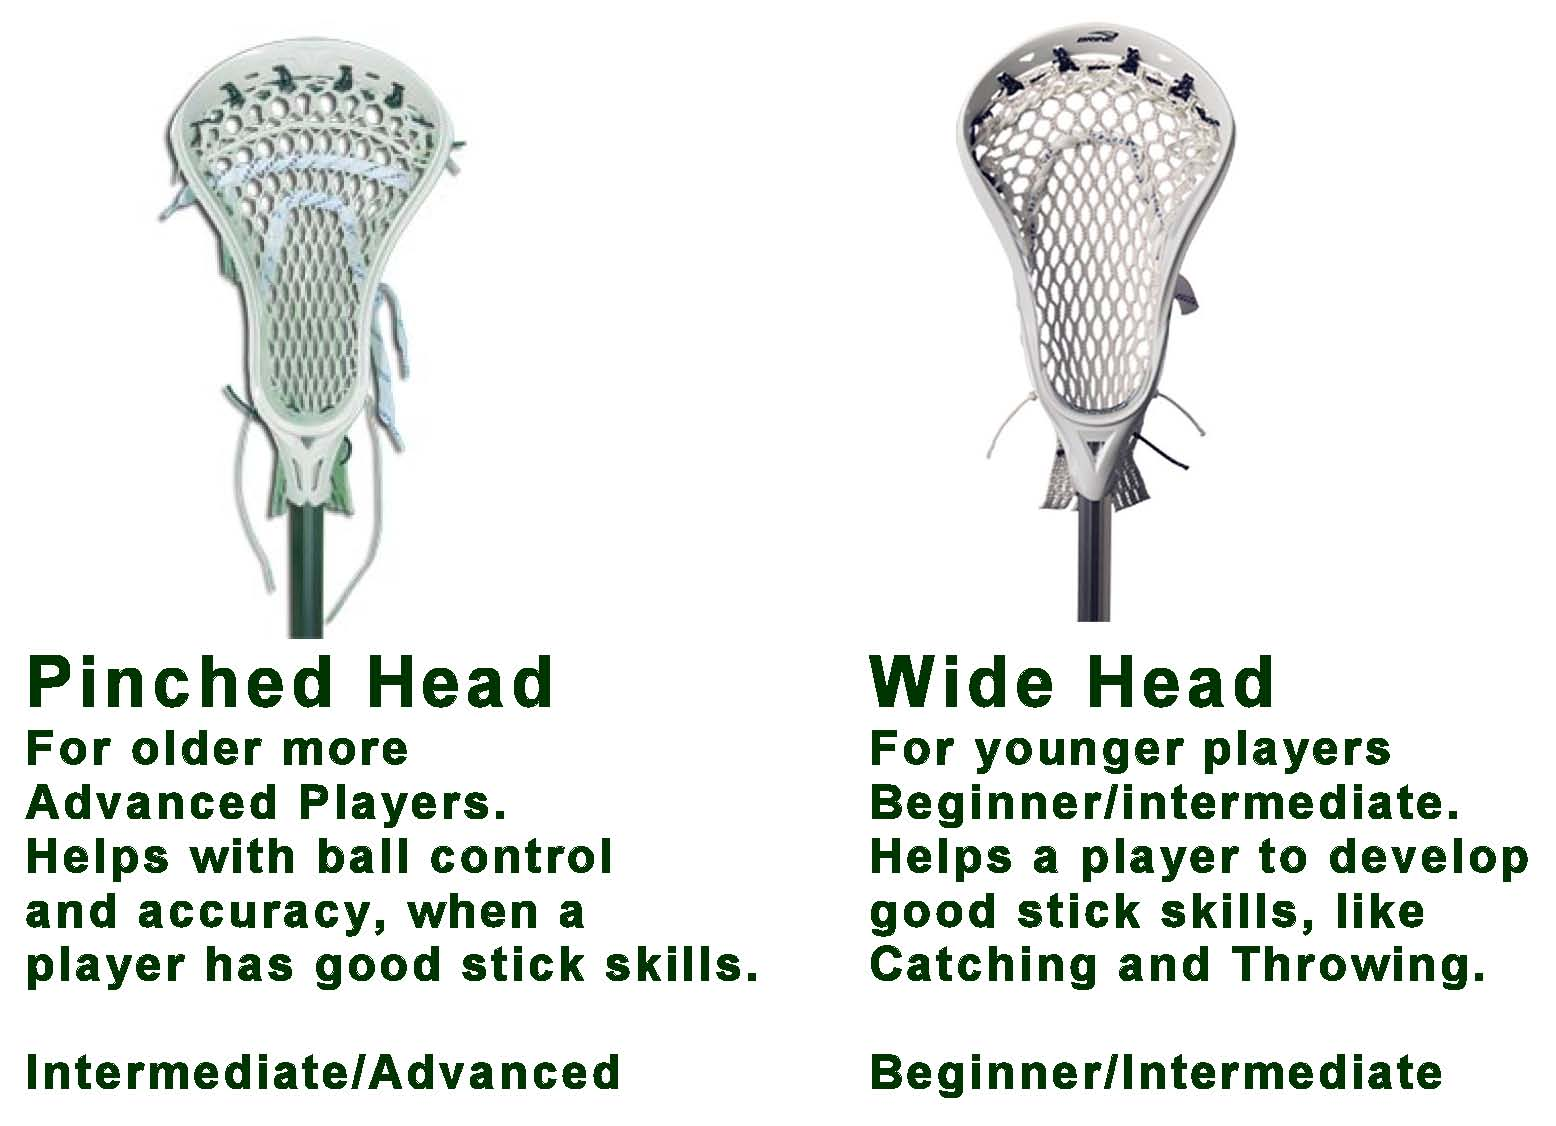 PINCHED-WIDE HEAD DIAGRAM